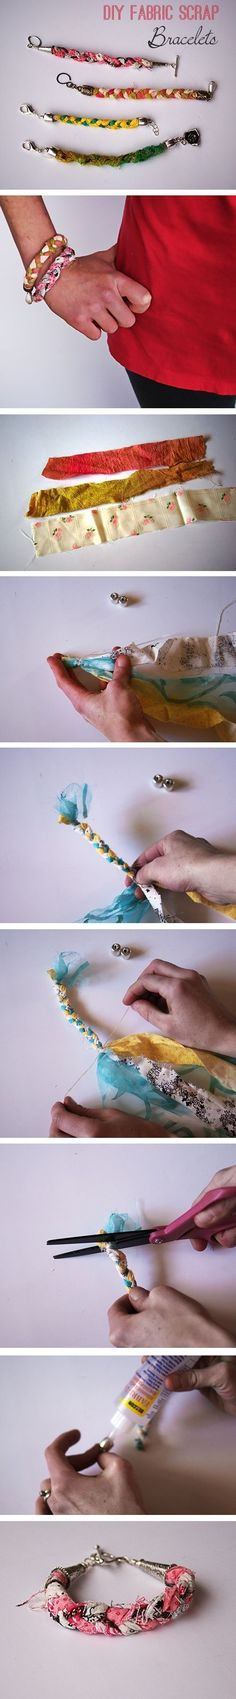 Easy scrap fabric bracelet #DIY